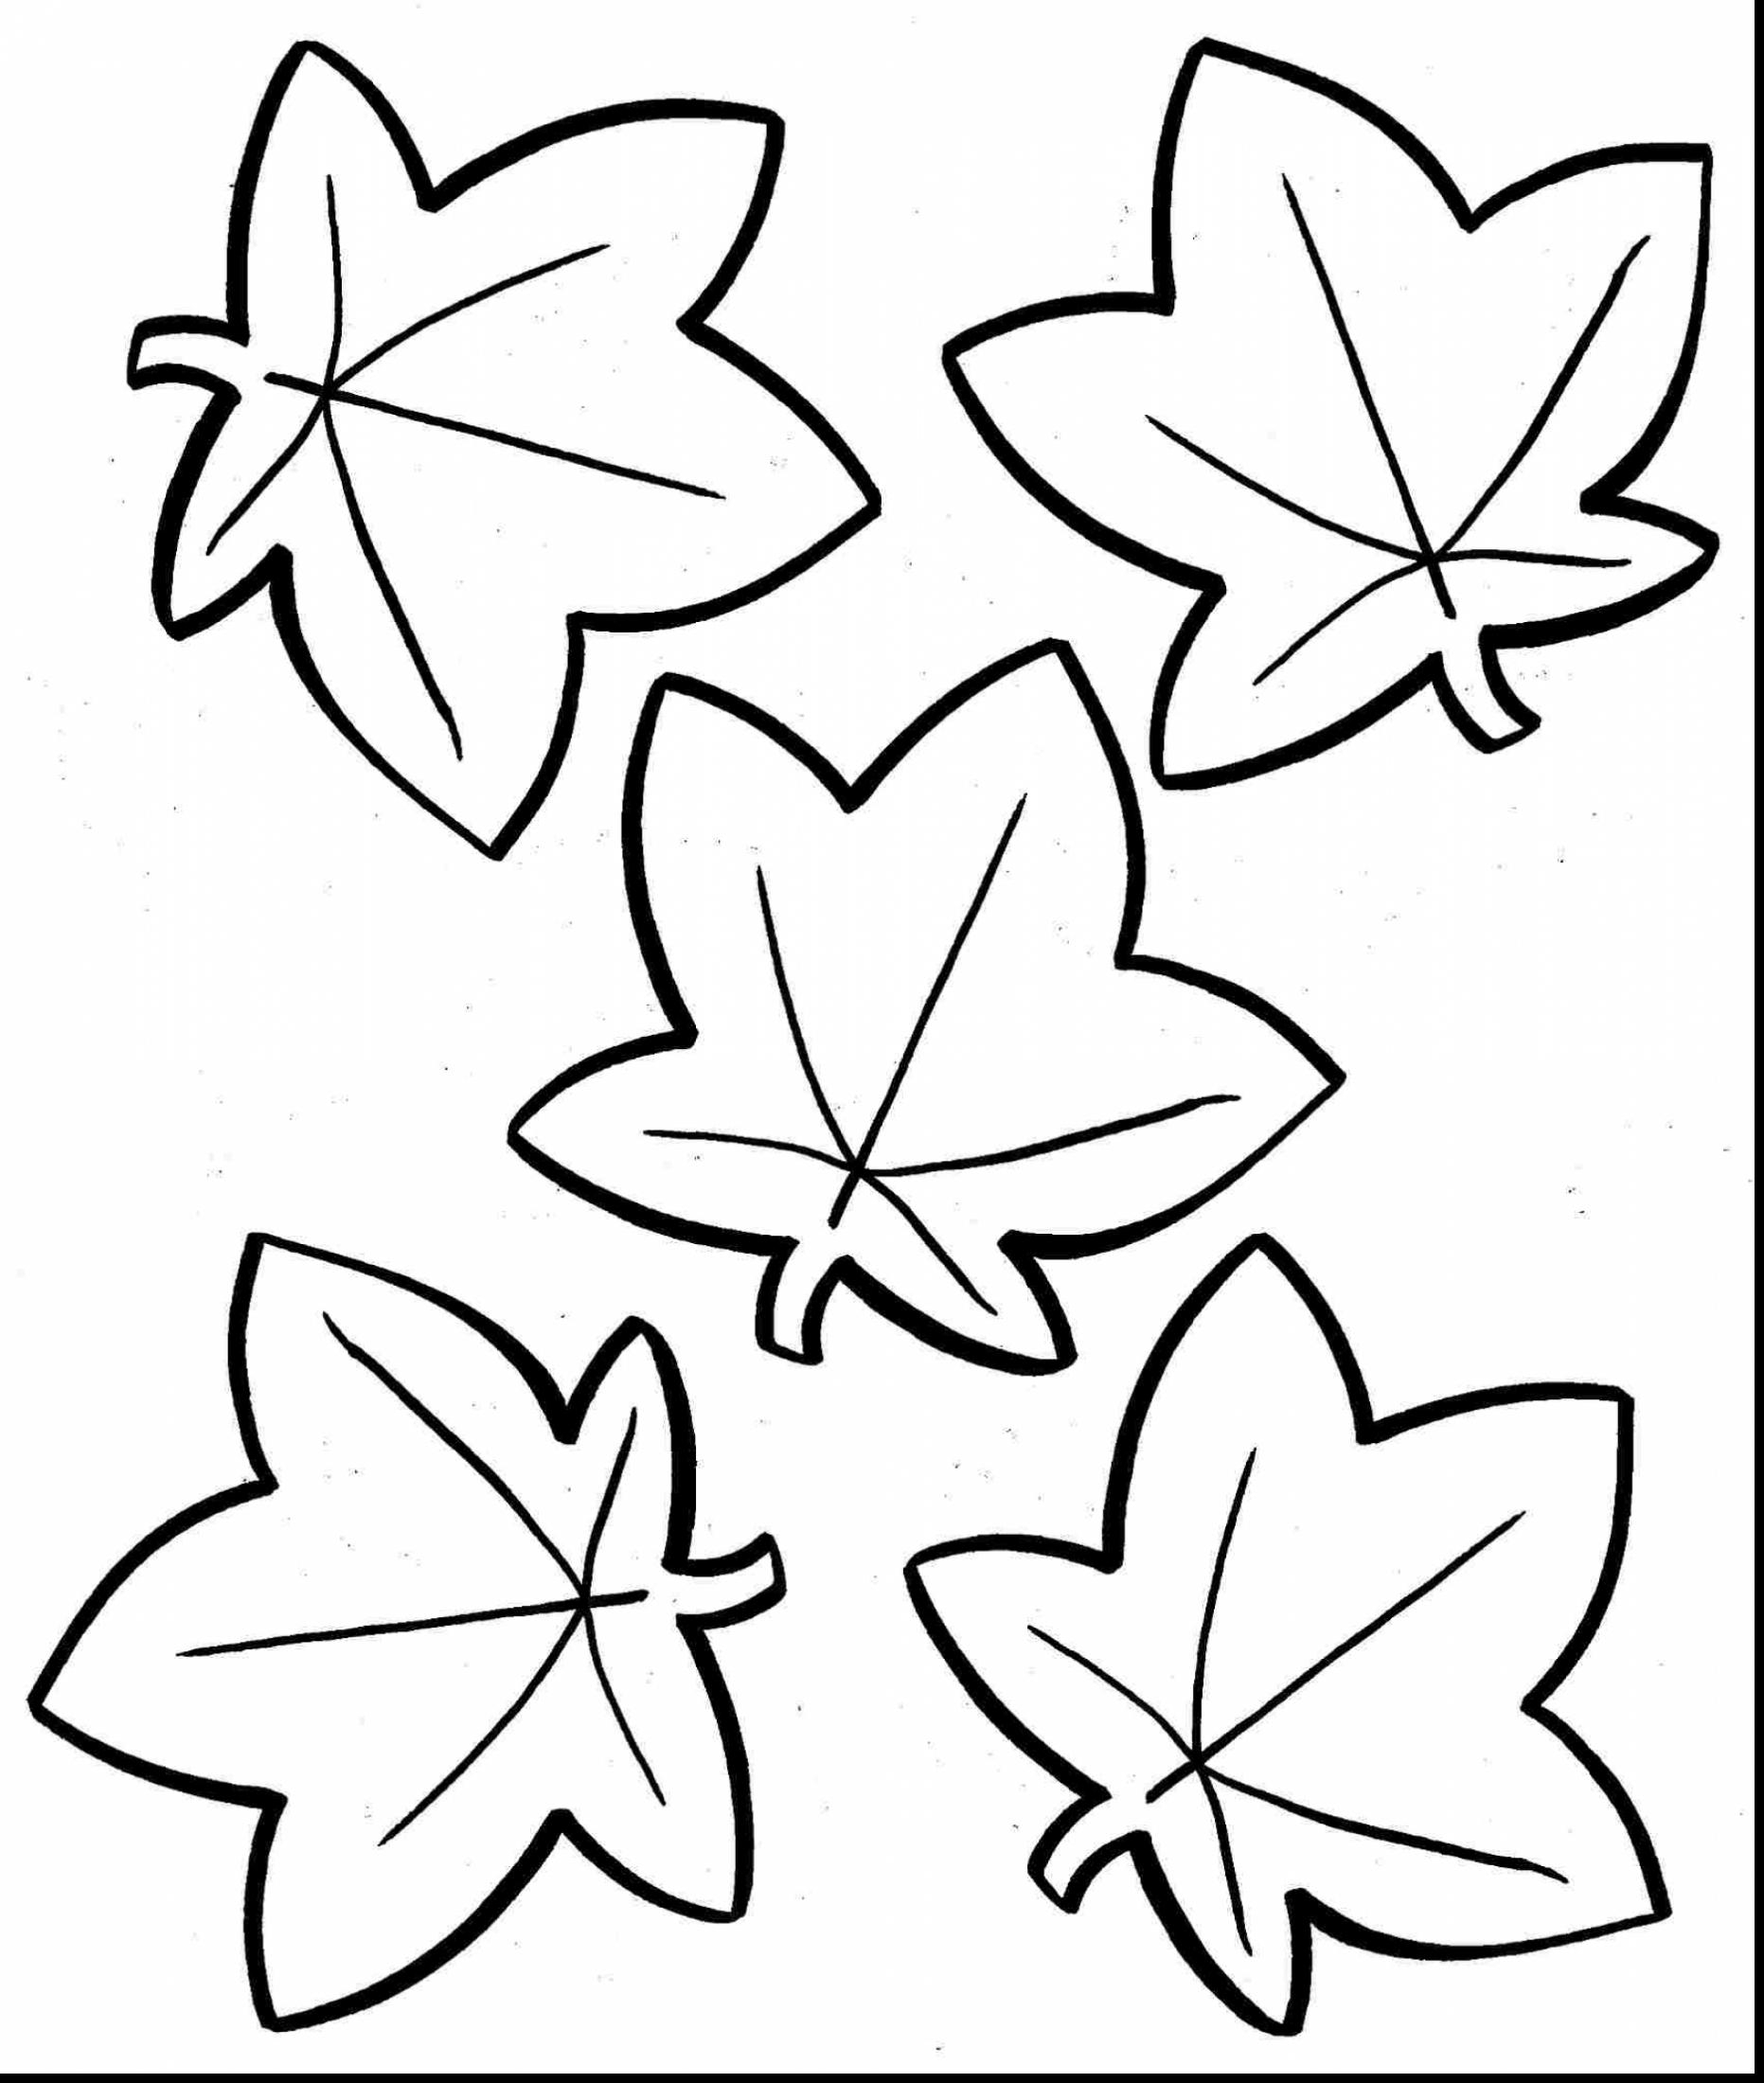 Pre Kinder Coloring Pages - Leaf Coloring Pages for Preschool Gallery